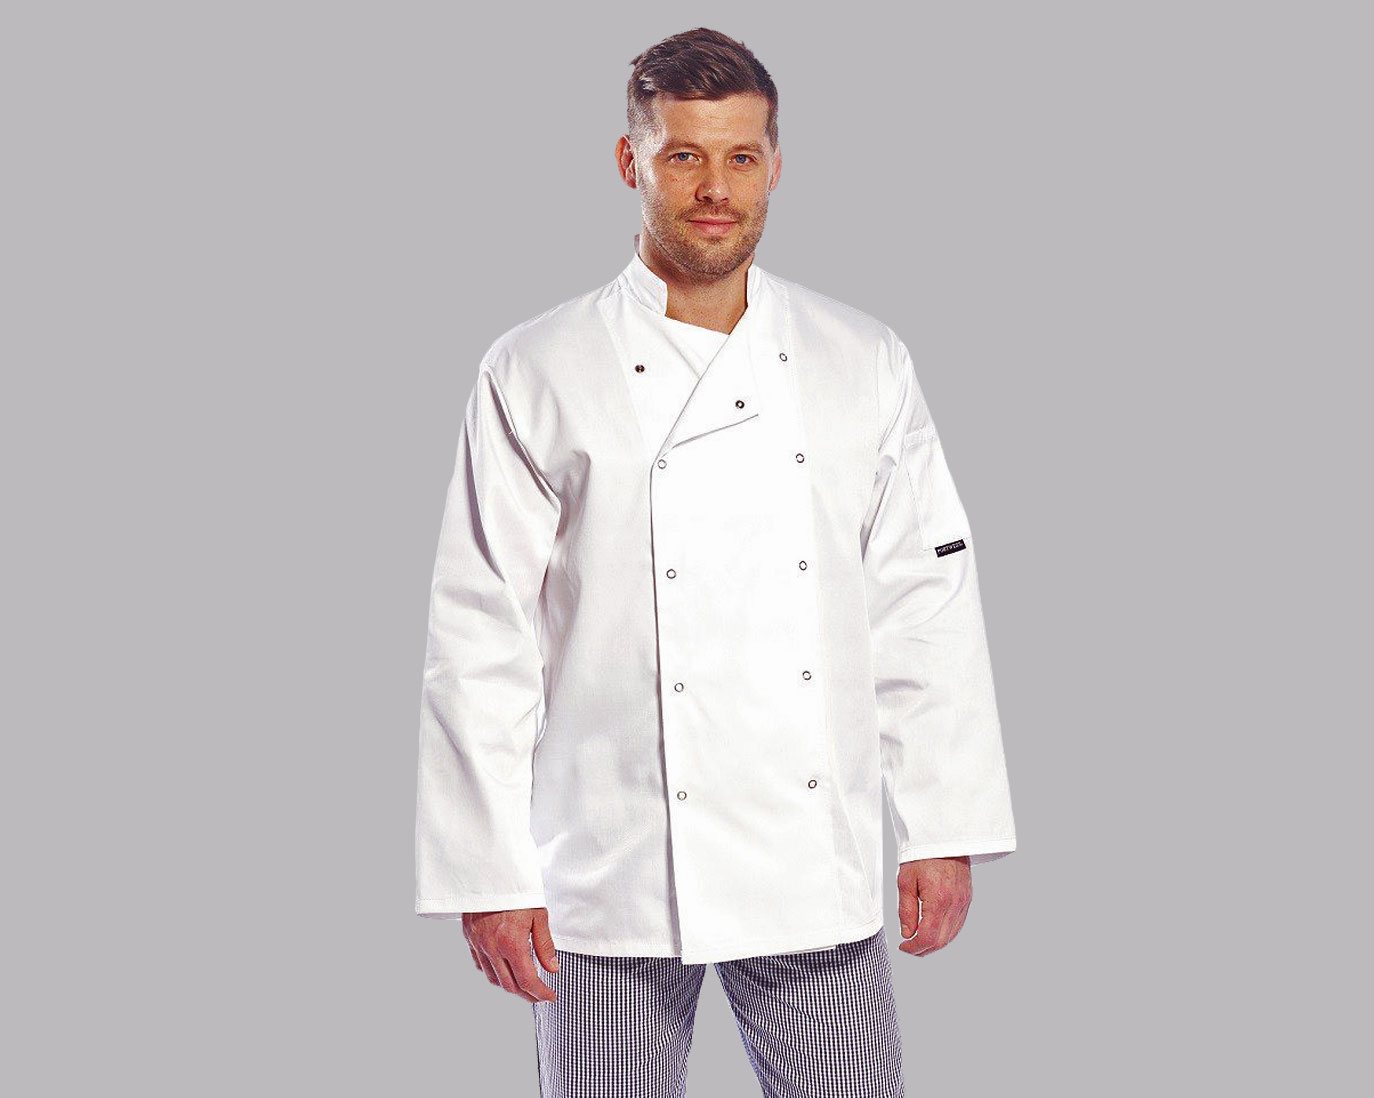 Chef's Clothing